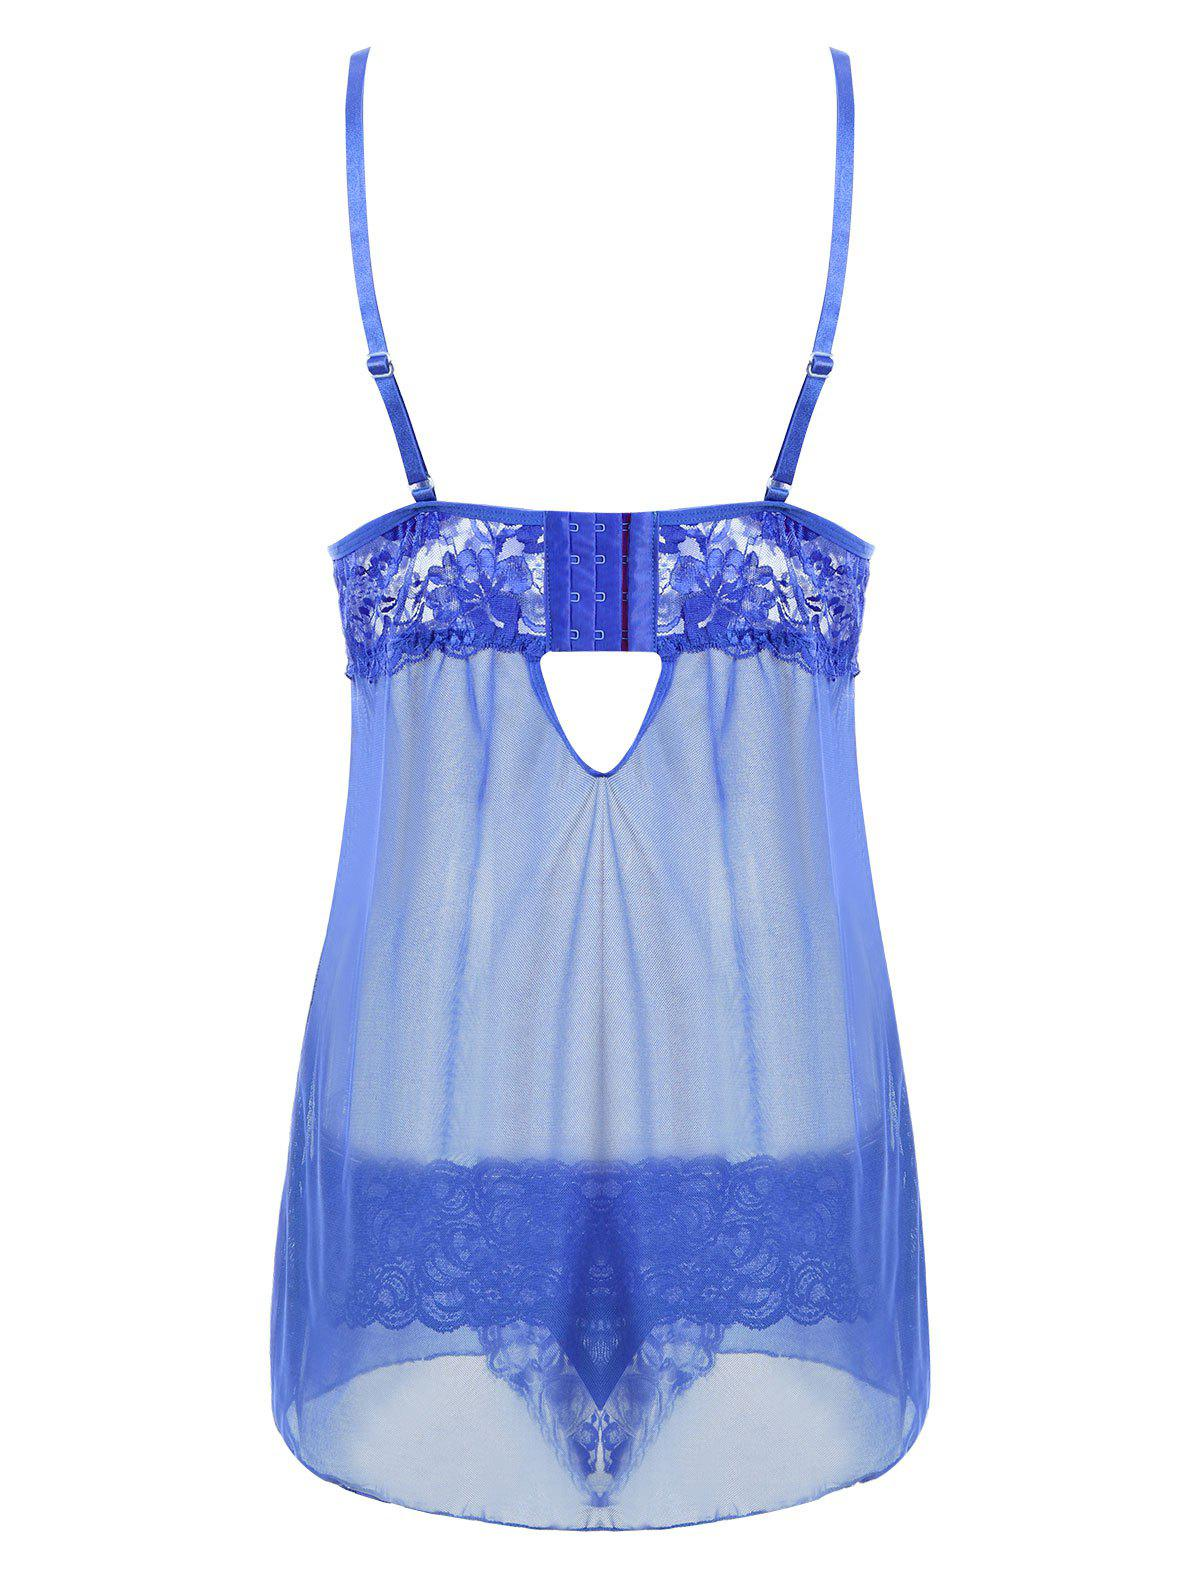 Cut Out See Through Slip Babydoll - BLUE XL